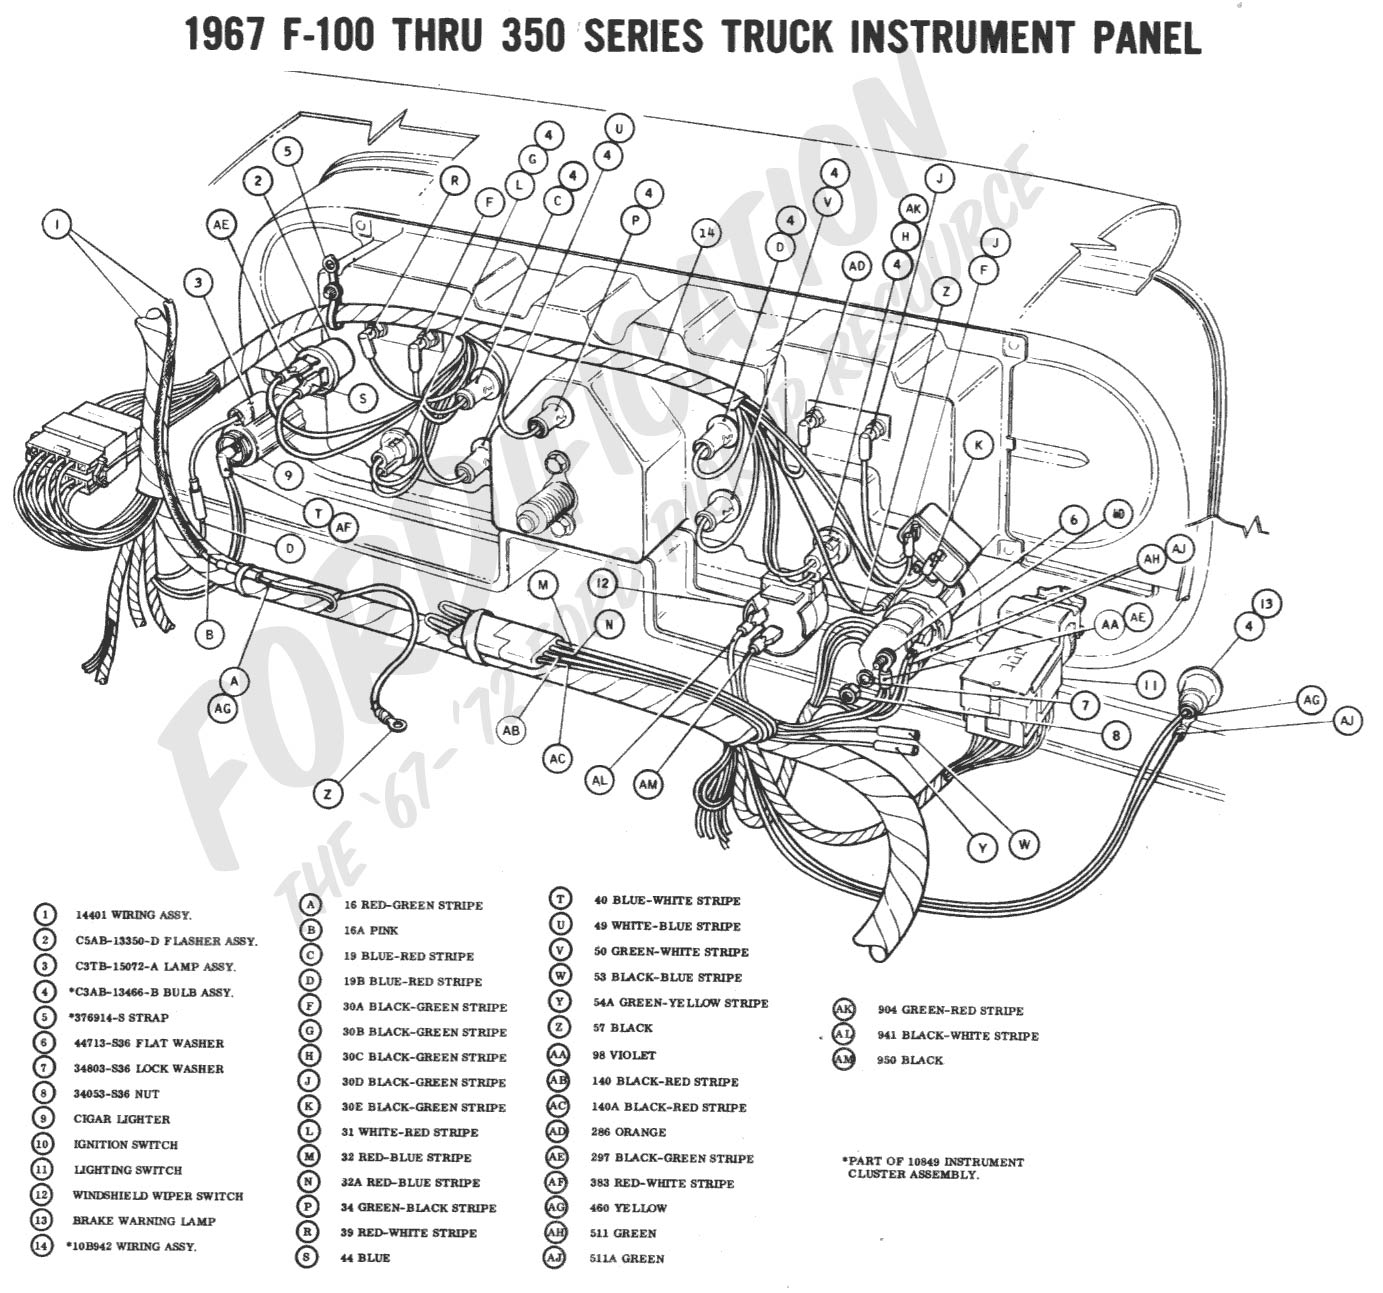 Schematics h further 1966 Gto Wiring Diagram besides Gm Steering Column Wiring Diagram together with One Wire Ford Alternator Conversion as well 1966 Mustang Front Bumper Diagram. on 1966 mustang alternator wiring diagram